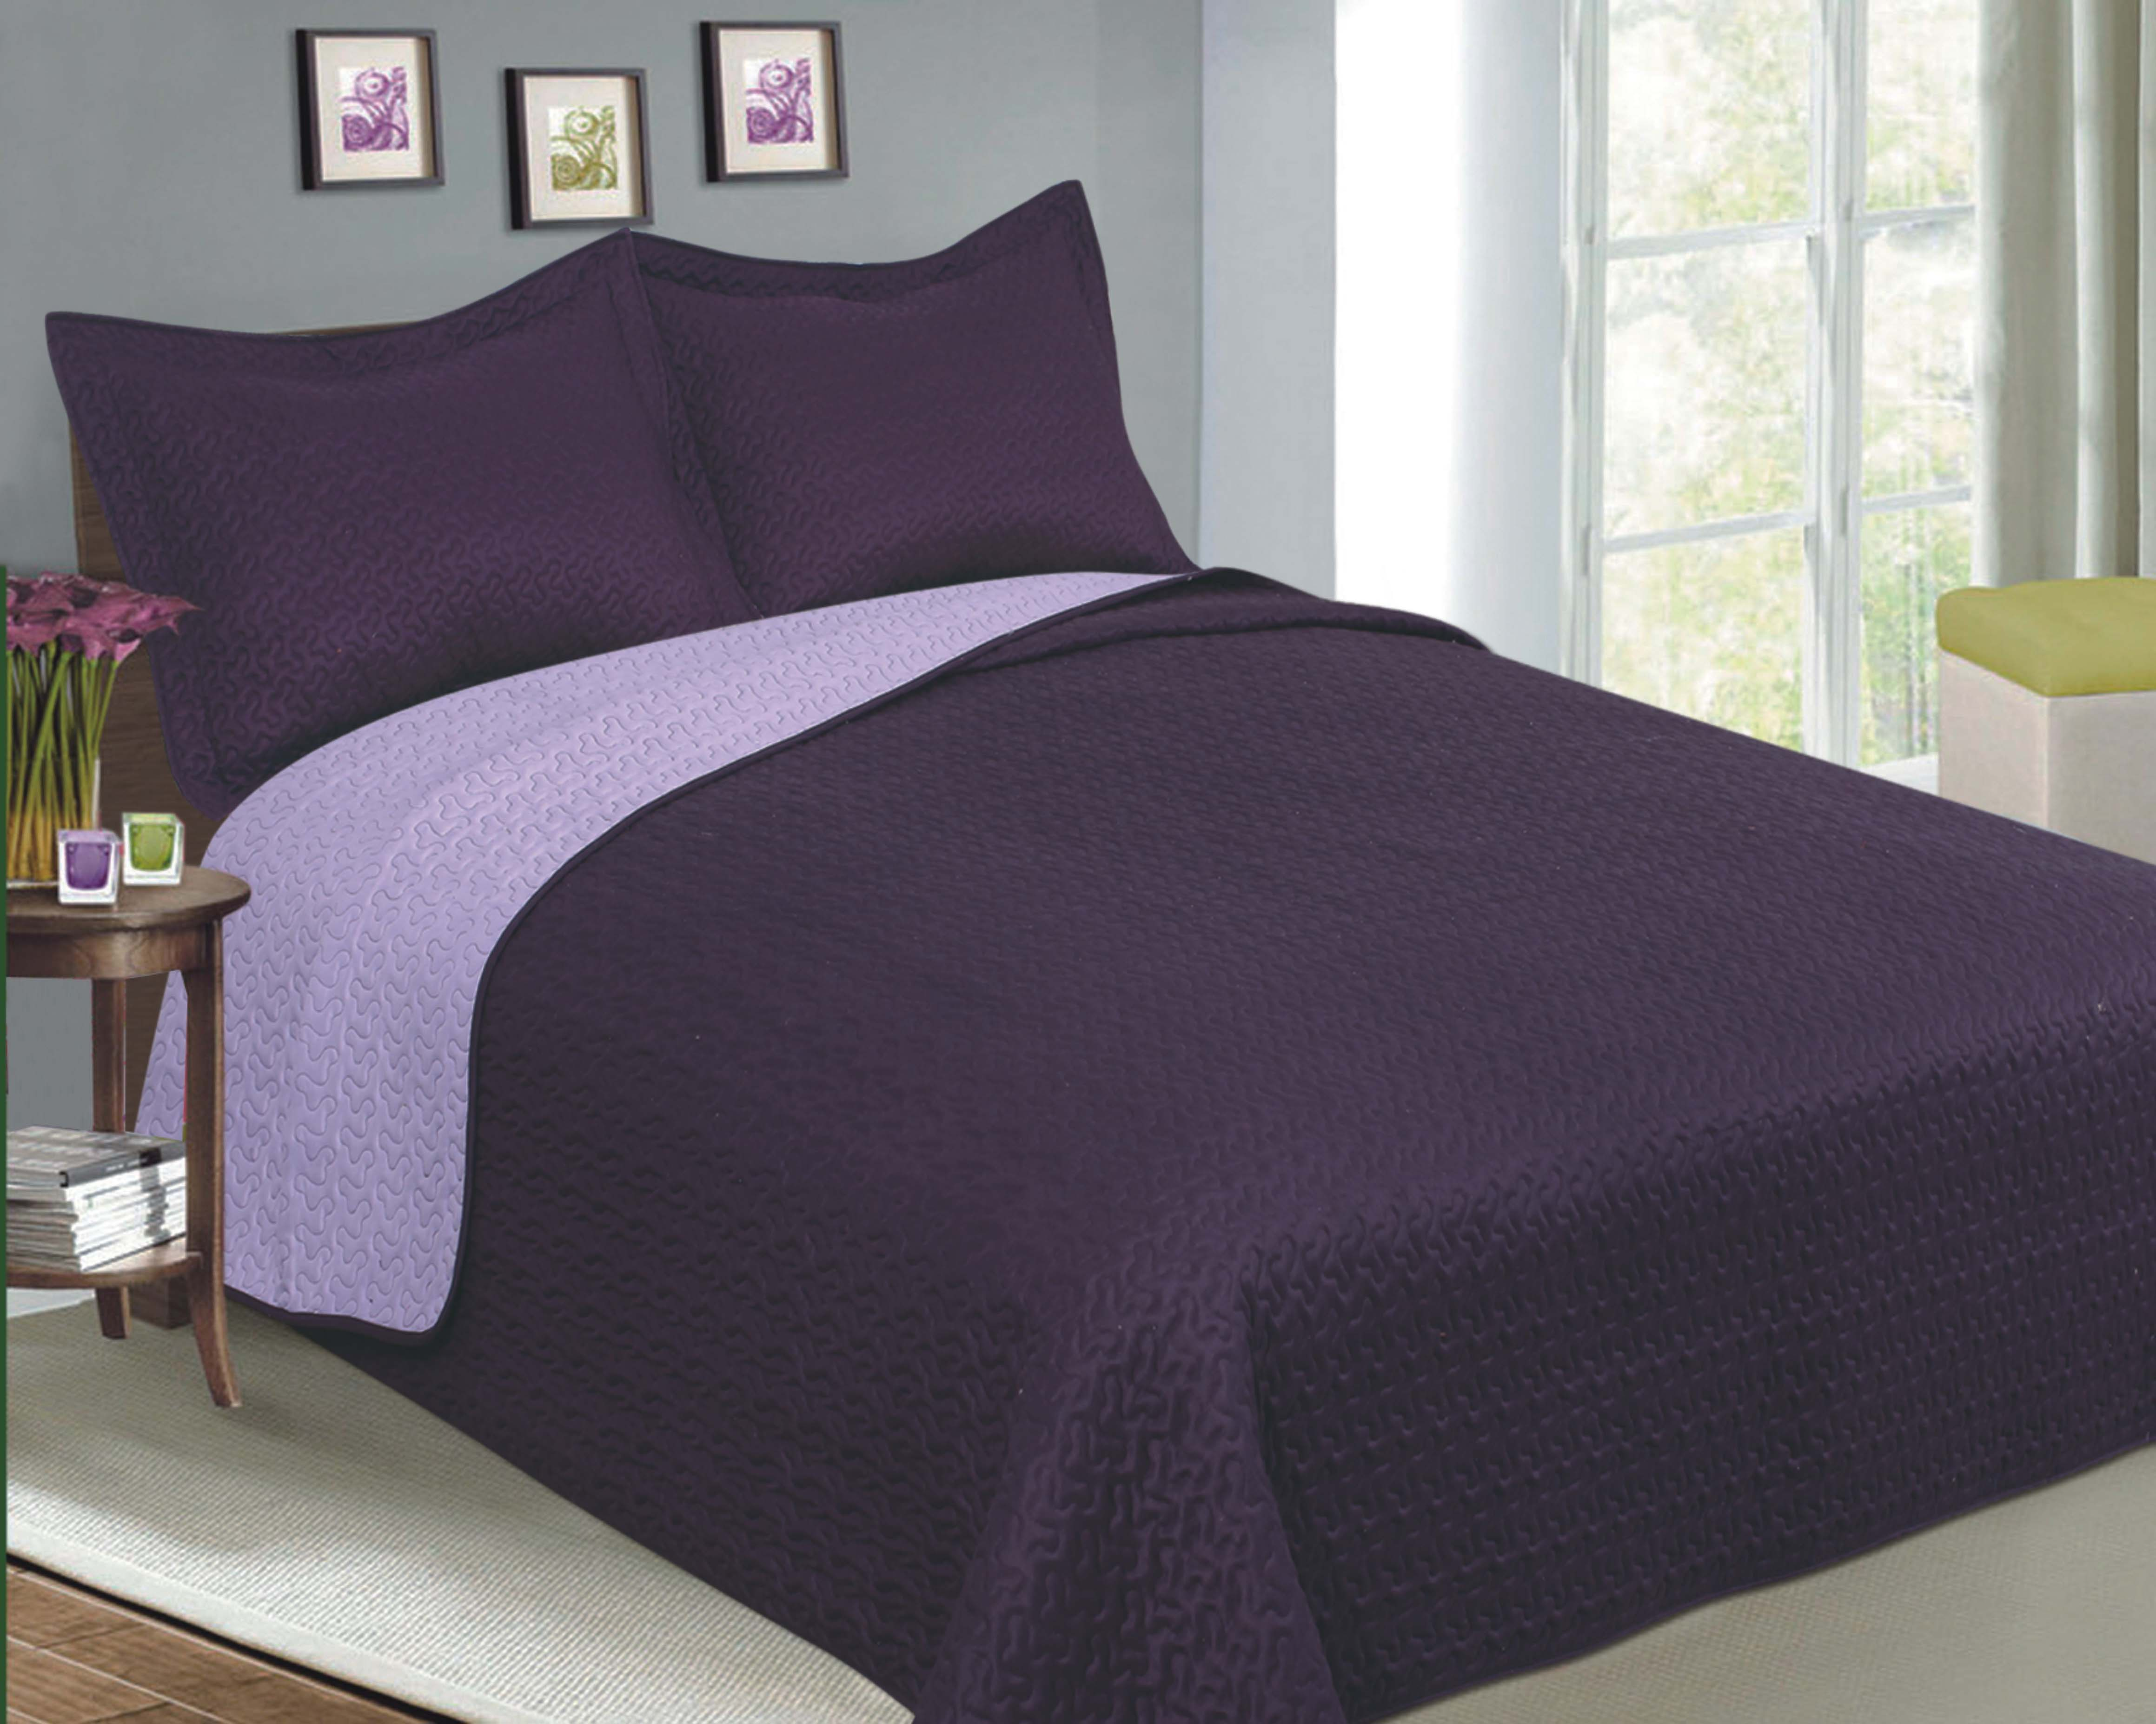 giselle embroidered cotton set overstock plum quilt free bath product shipping bedding piece today